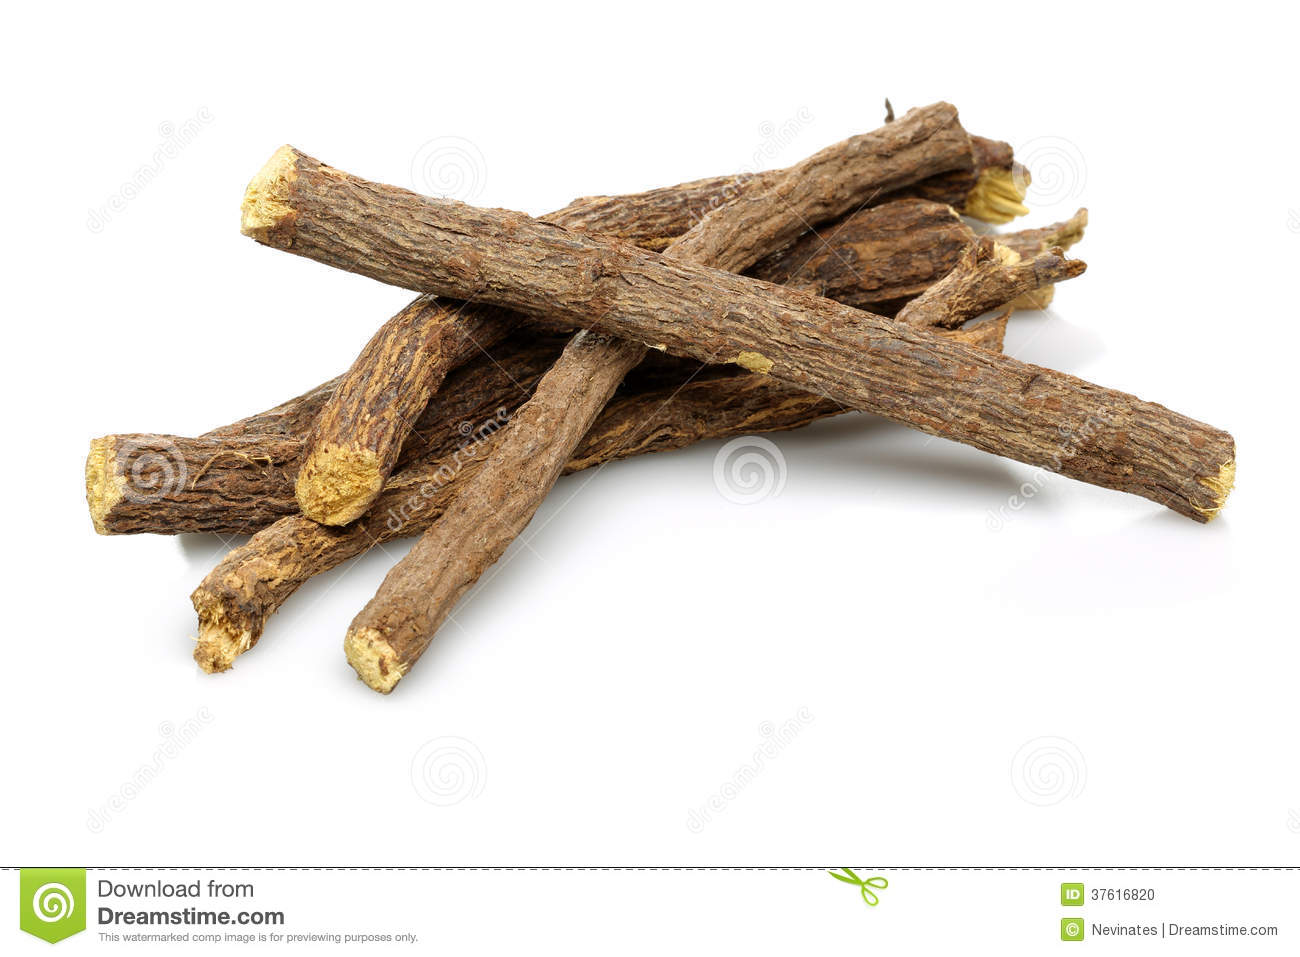 Licorice root sticks